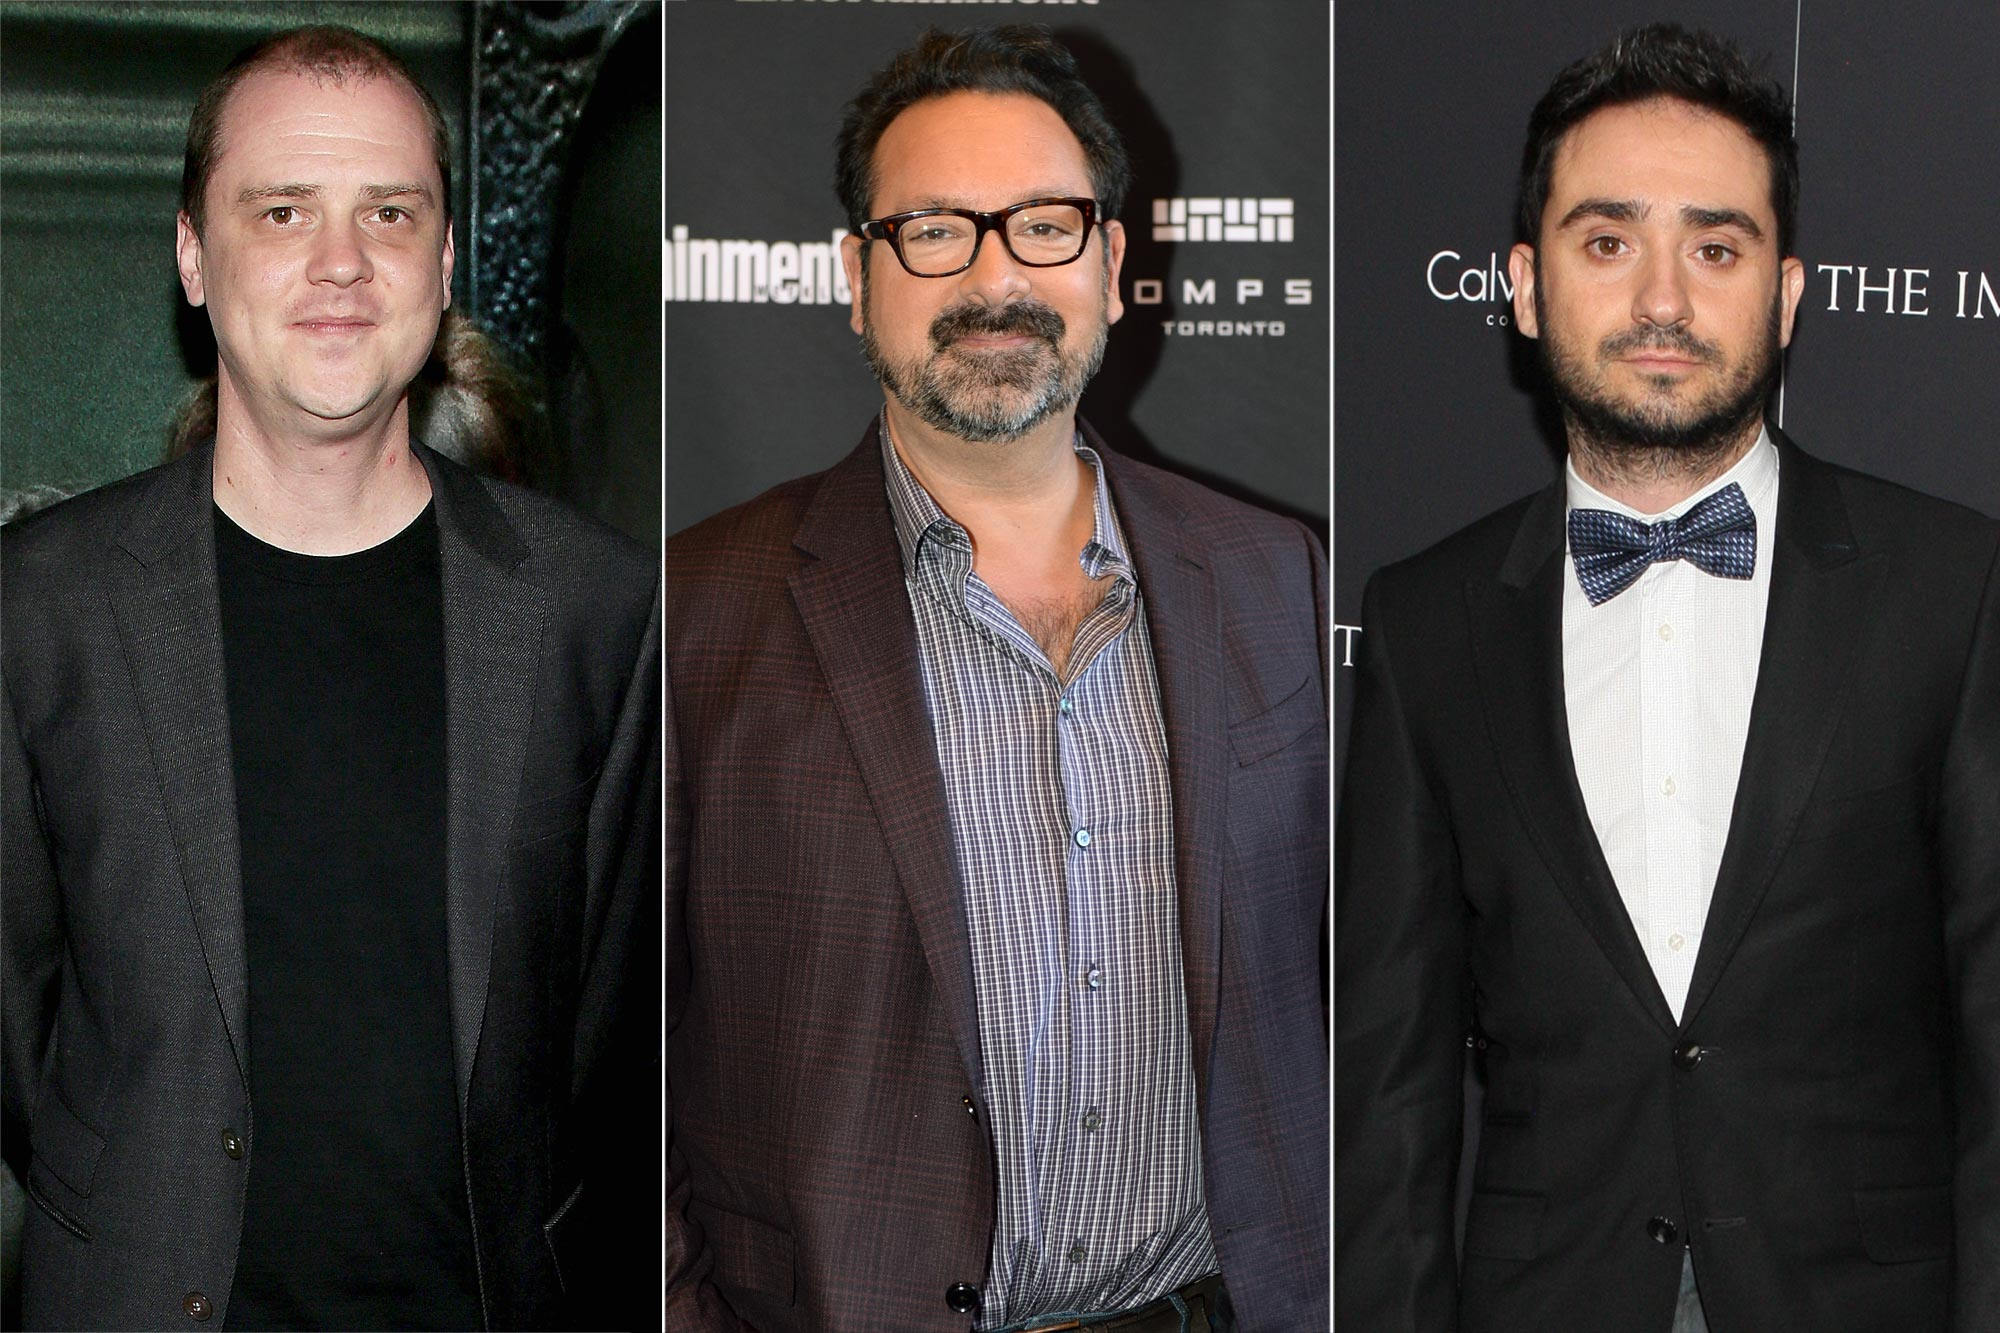 Mike Flanagan, James Mangold, and JA Bayona